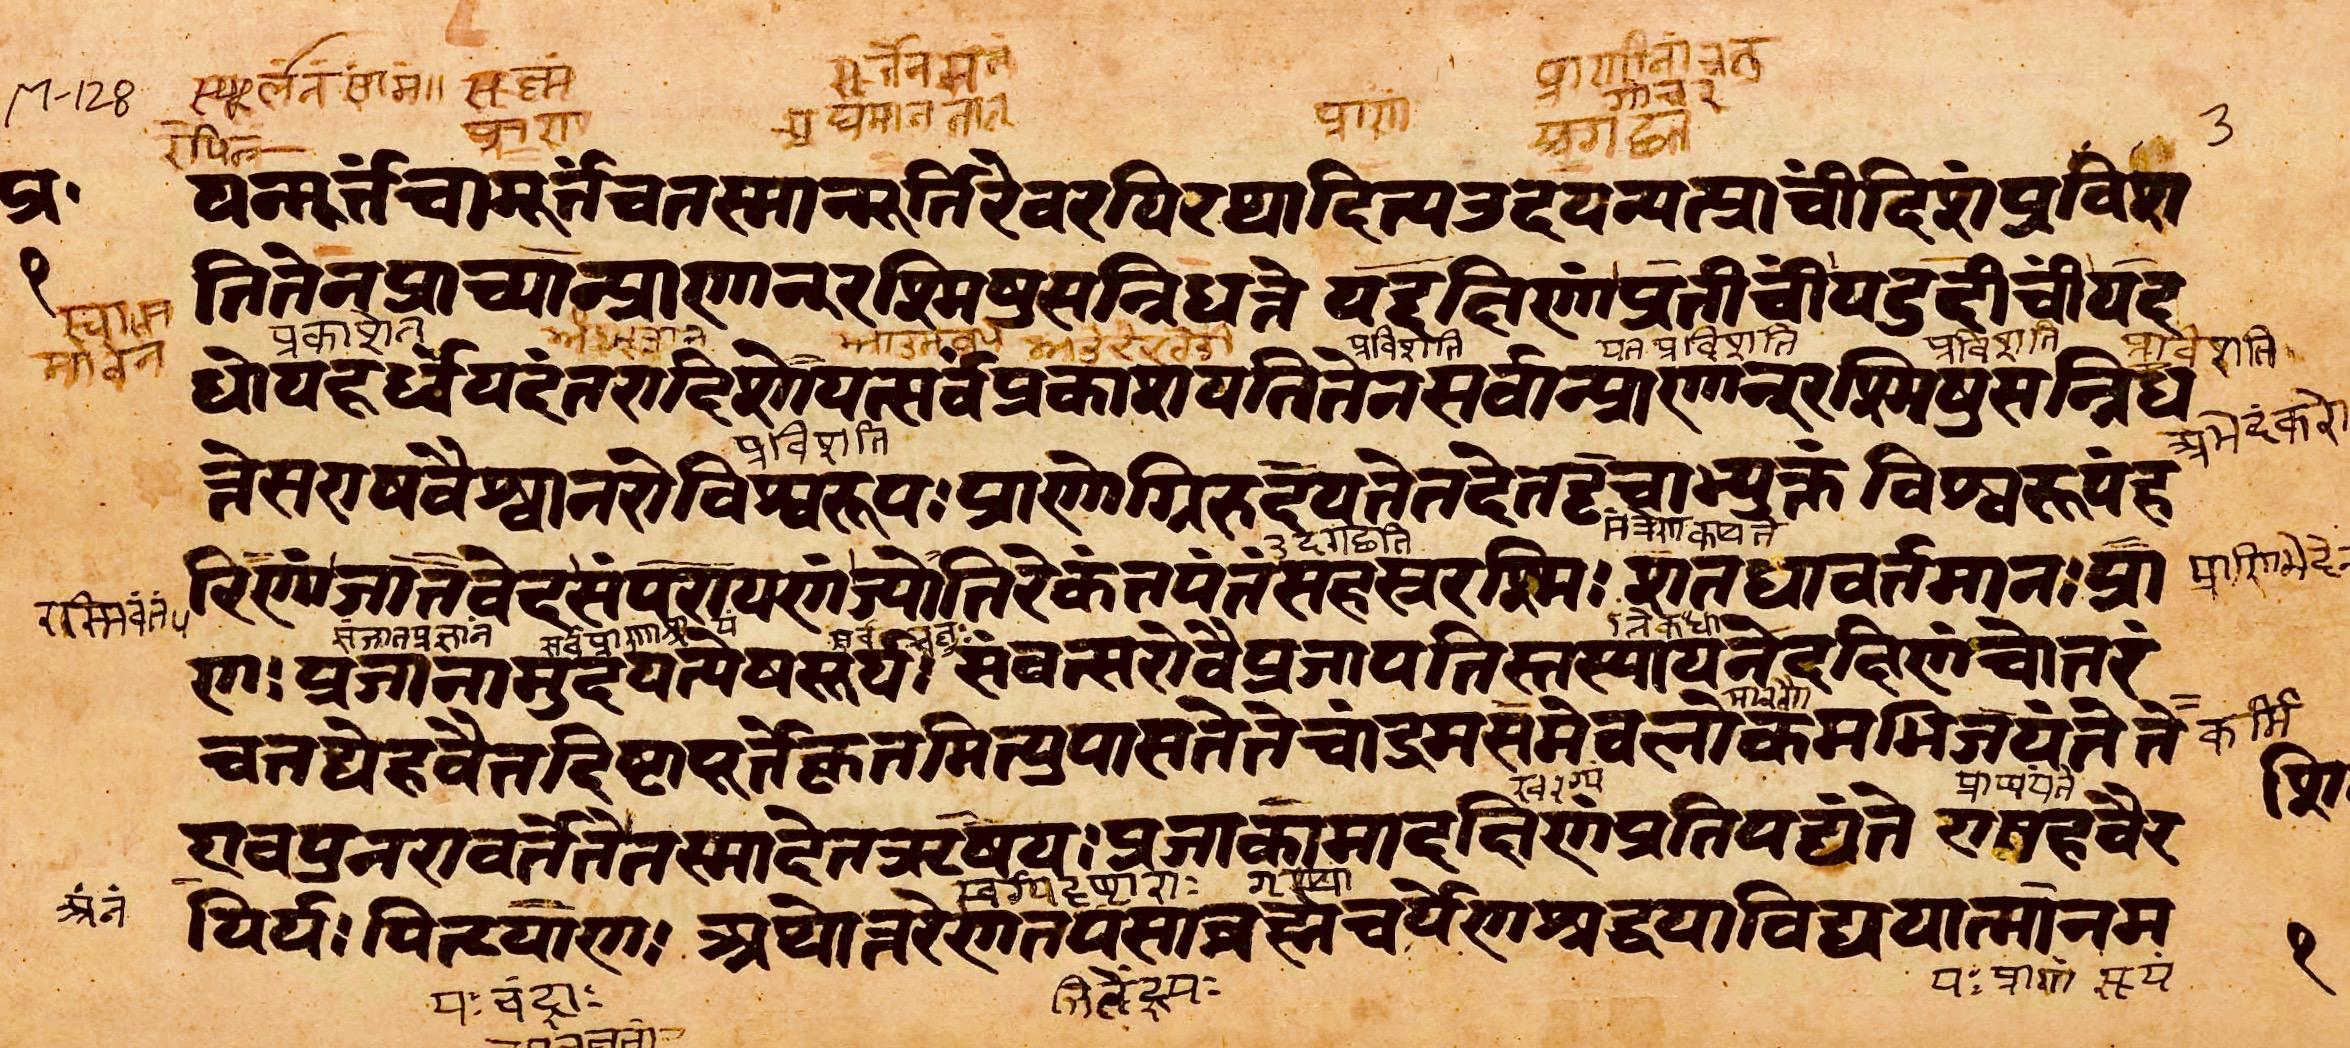 Sanskrit Of The Vedas Vs Modern Sanskrit: File:Prashna Upanishad Sample Manuscript Page, Sanskrit